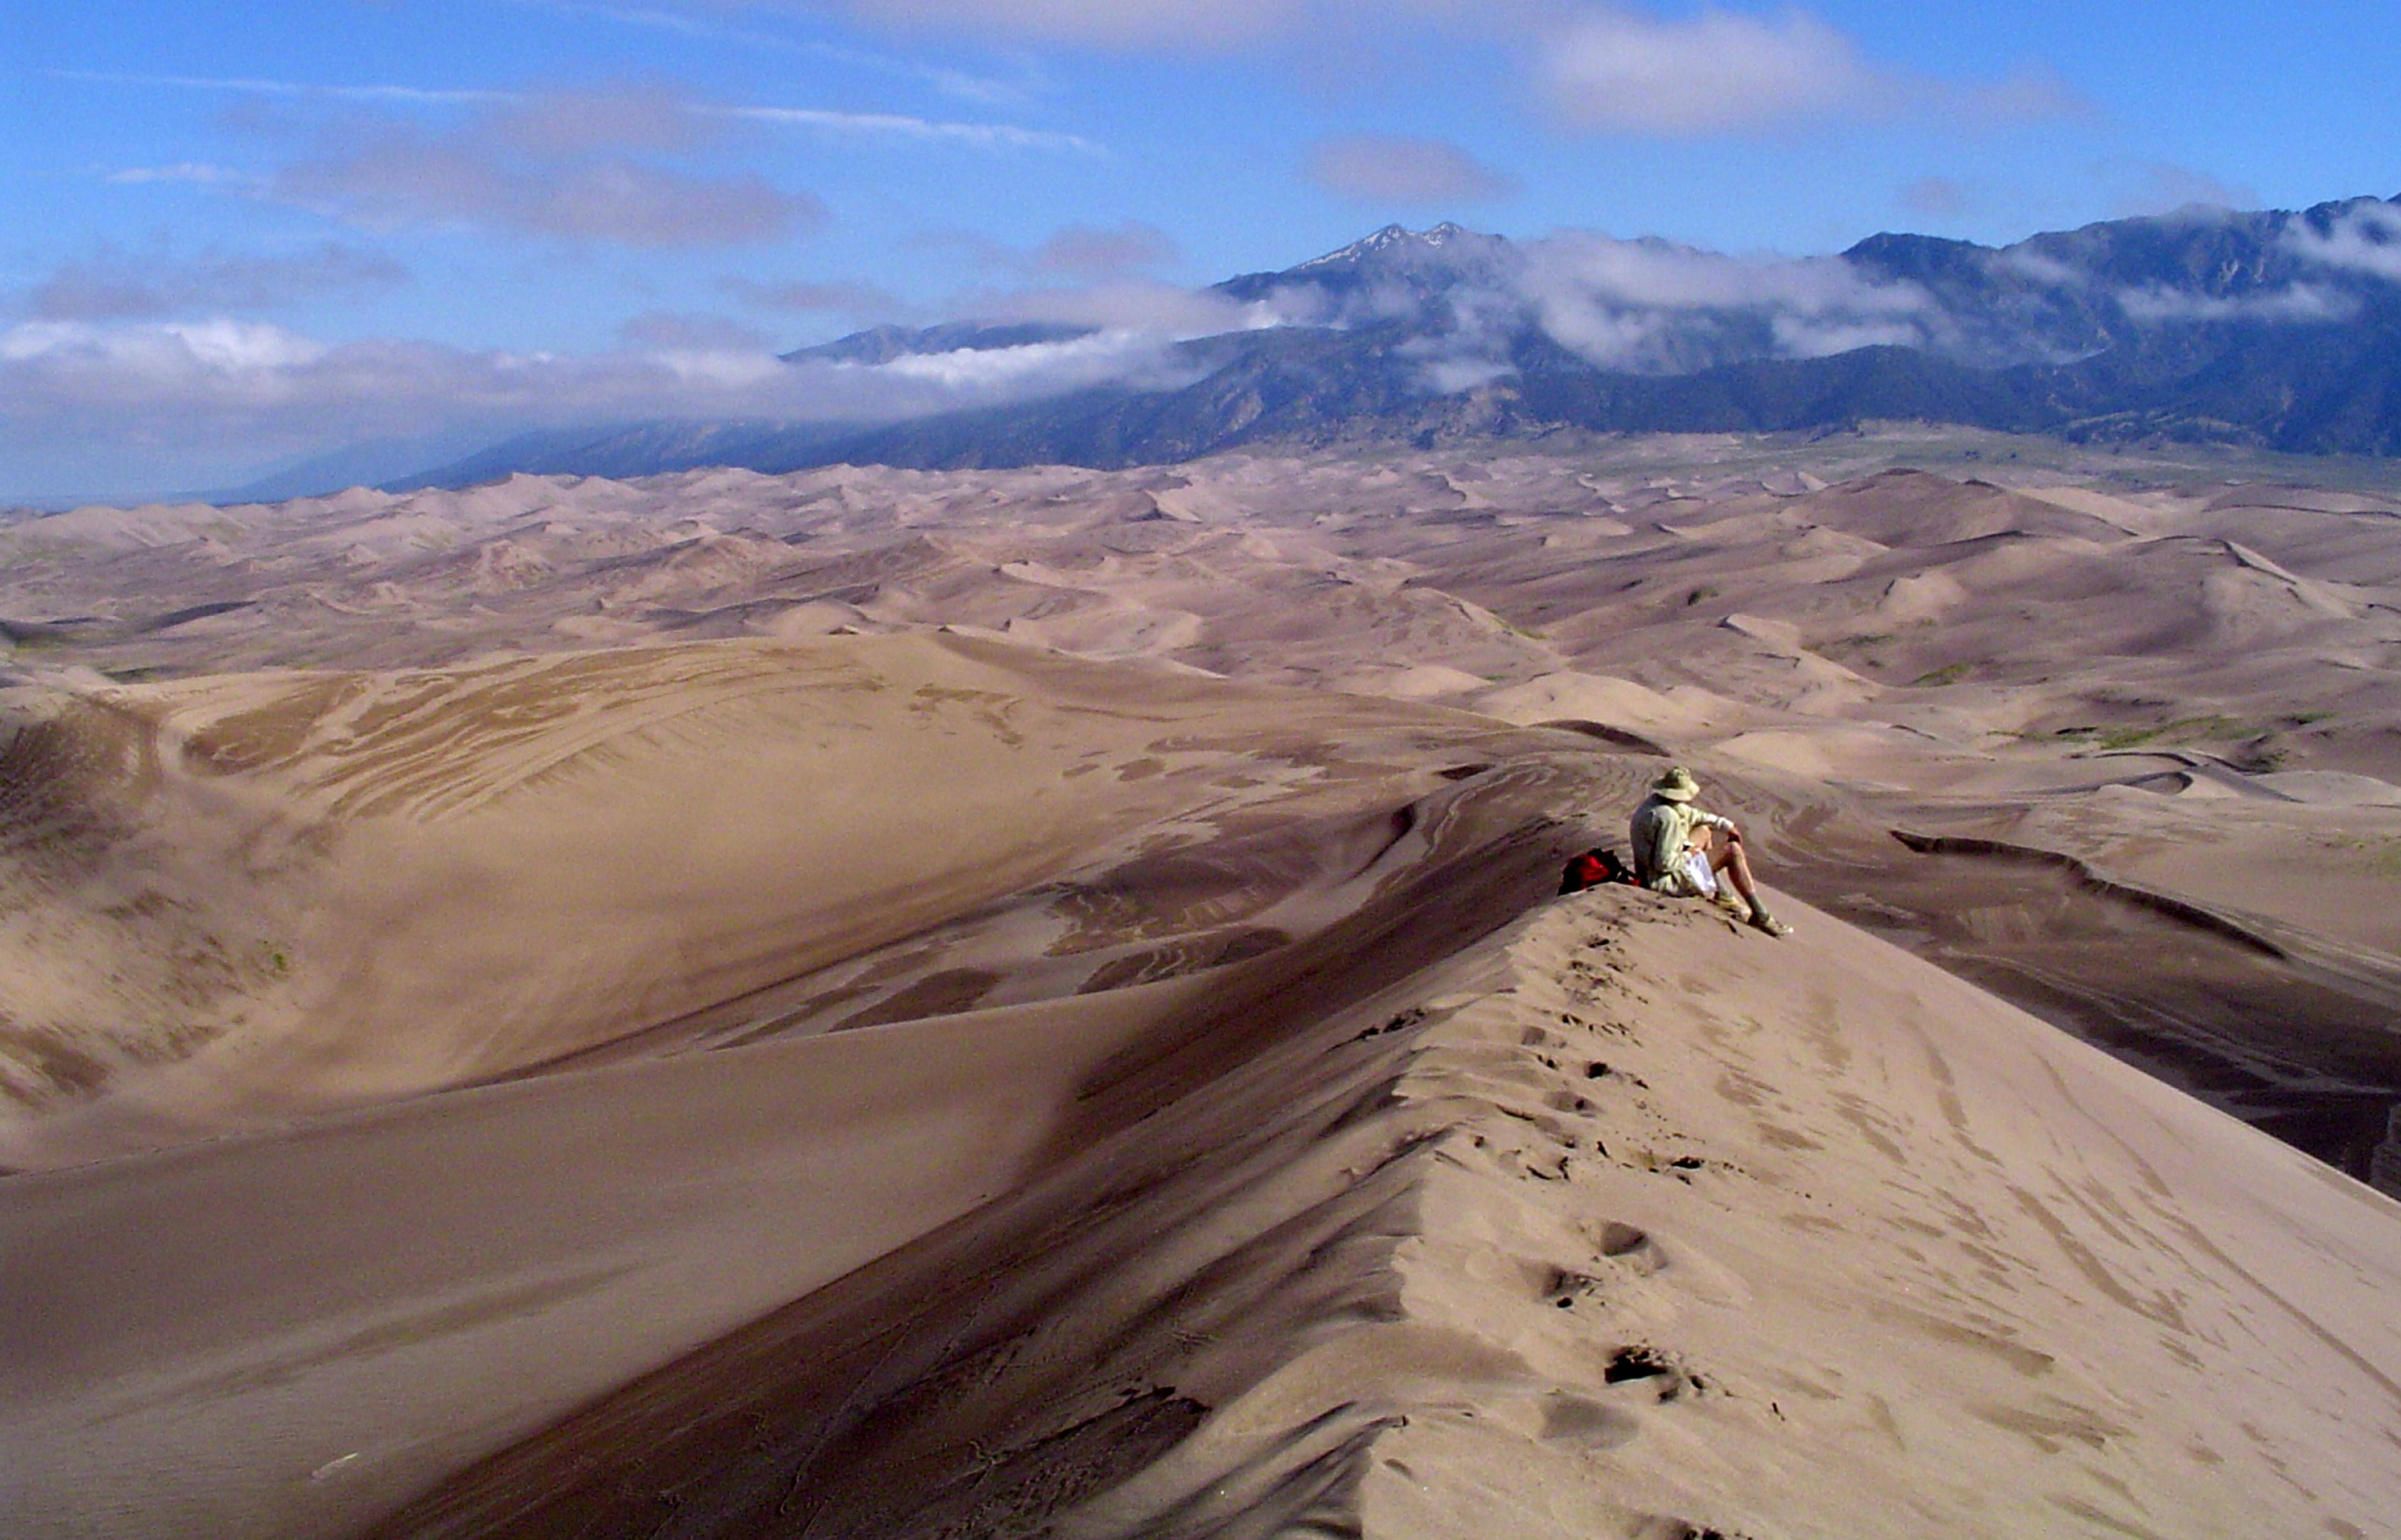 A solo hiker in Great Sand Dunes National Park in Colorado.